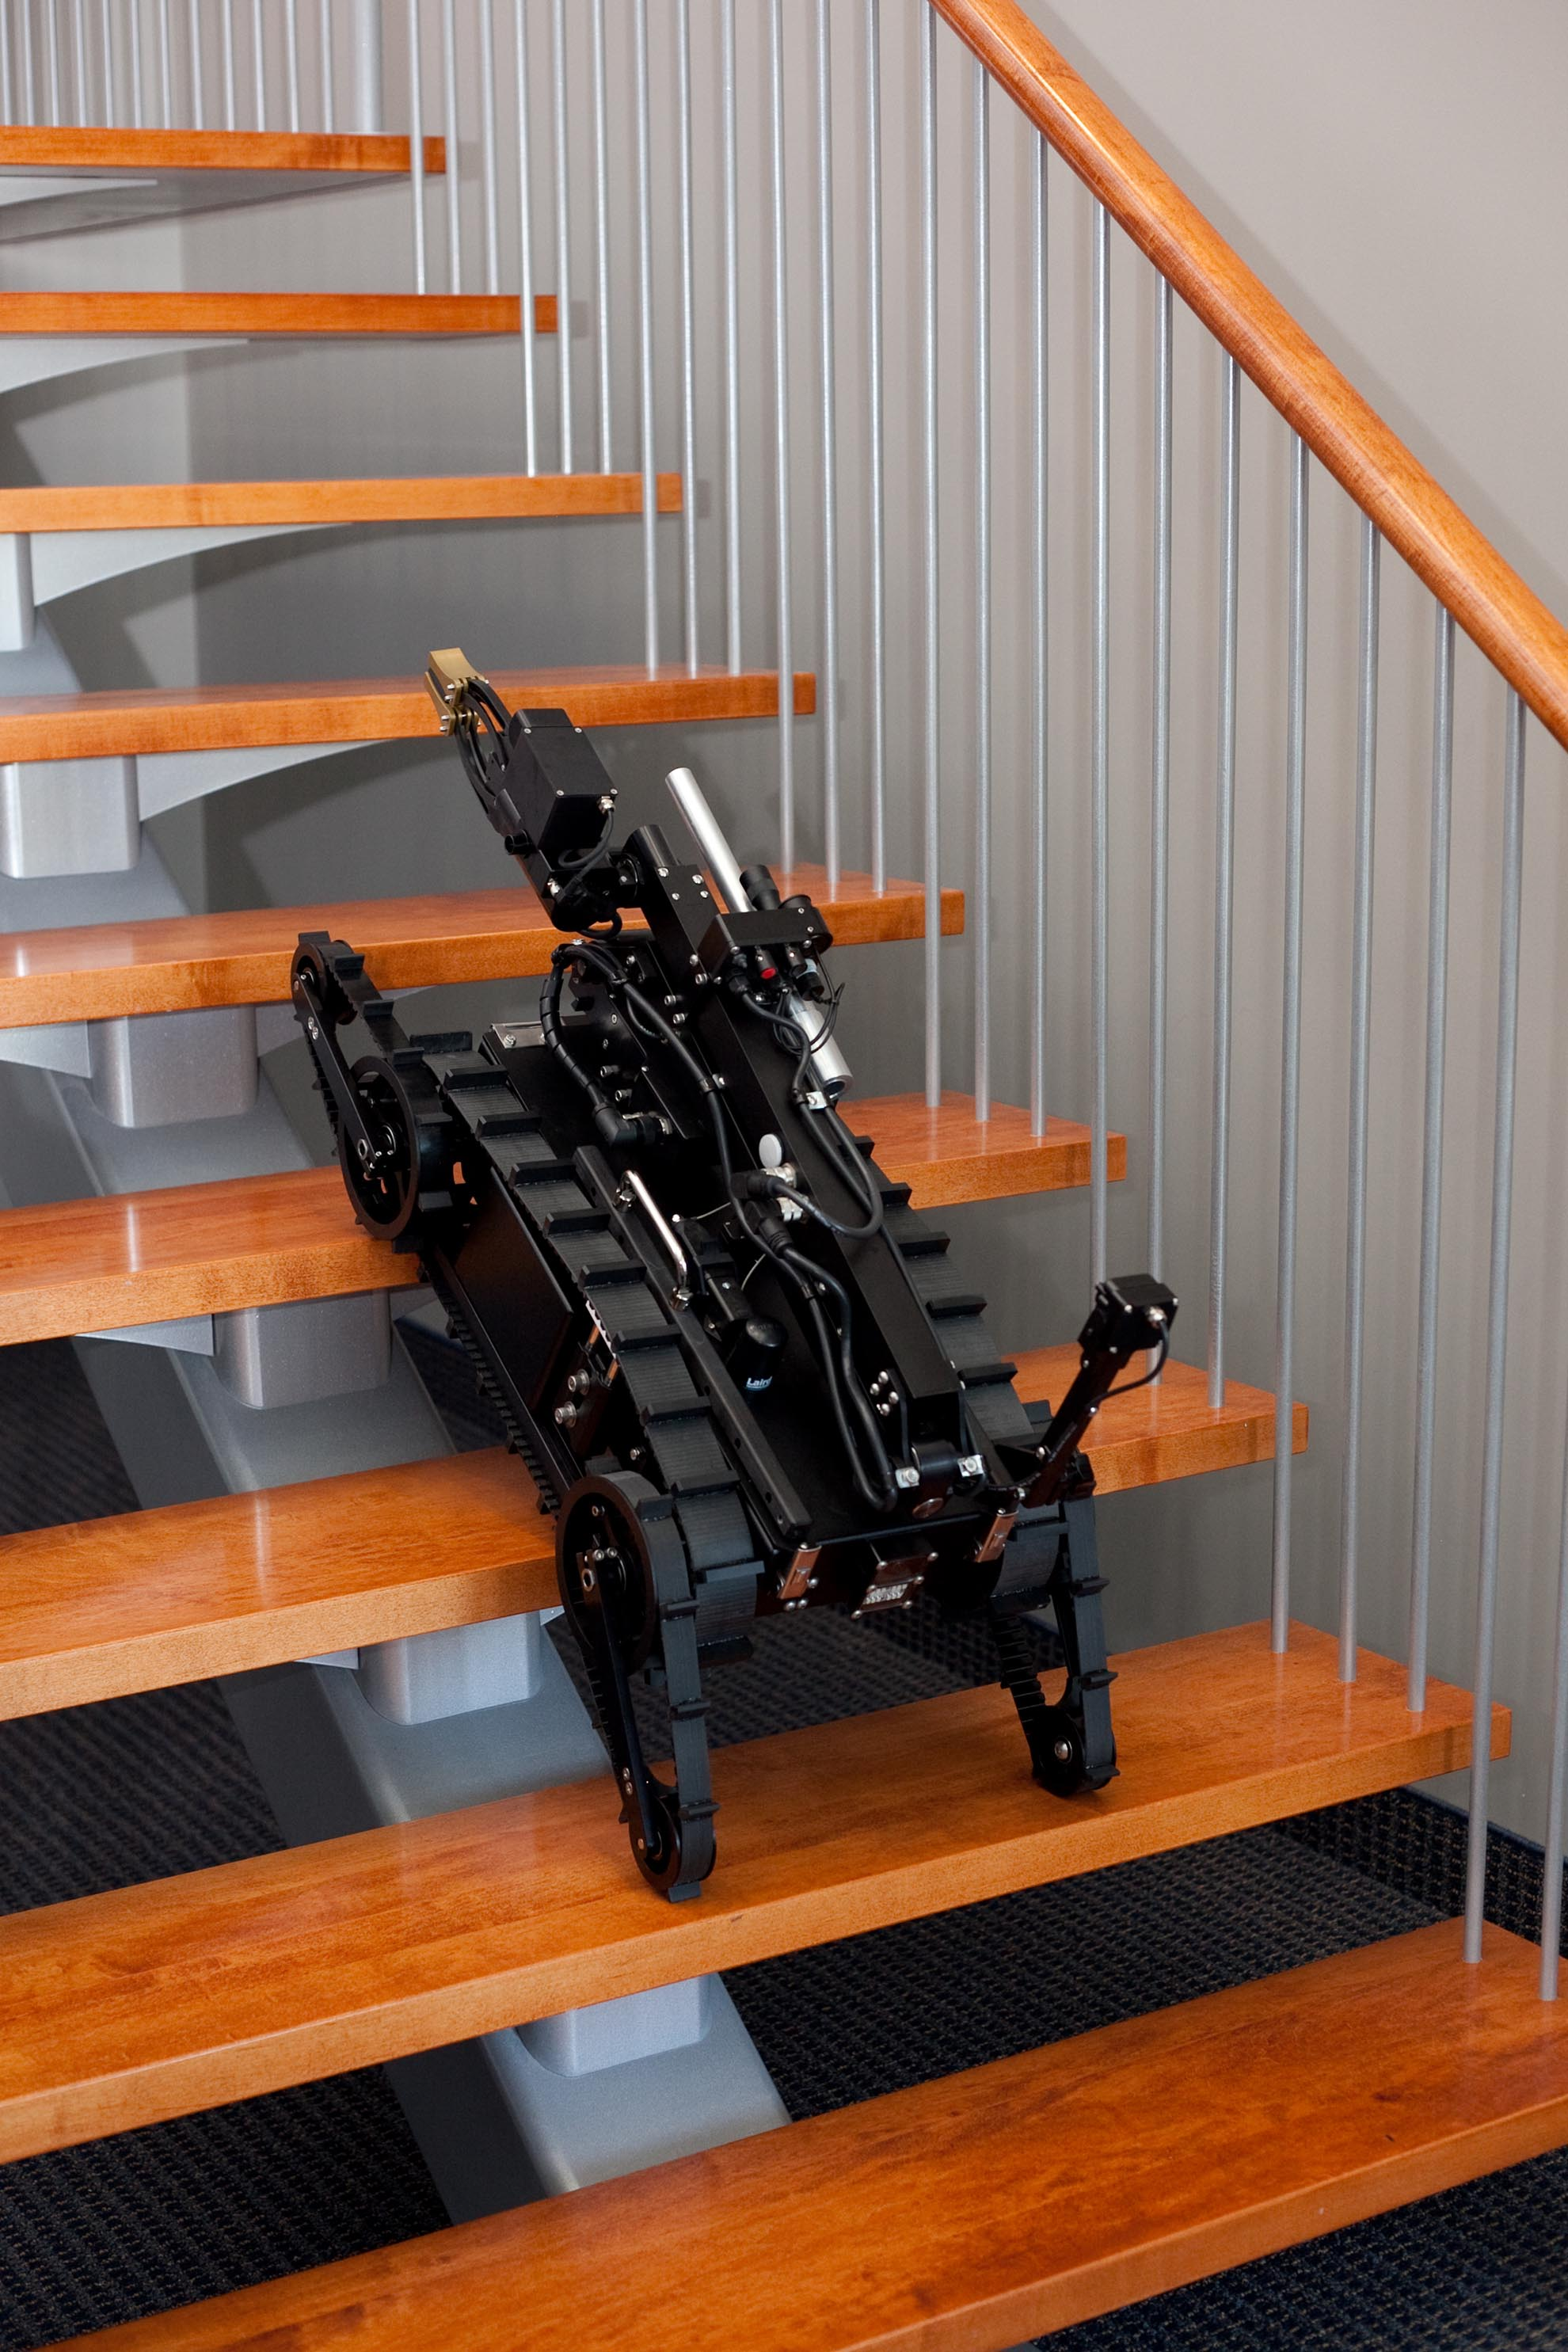 mini-caliber-swat-robot-stair-climb